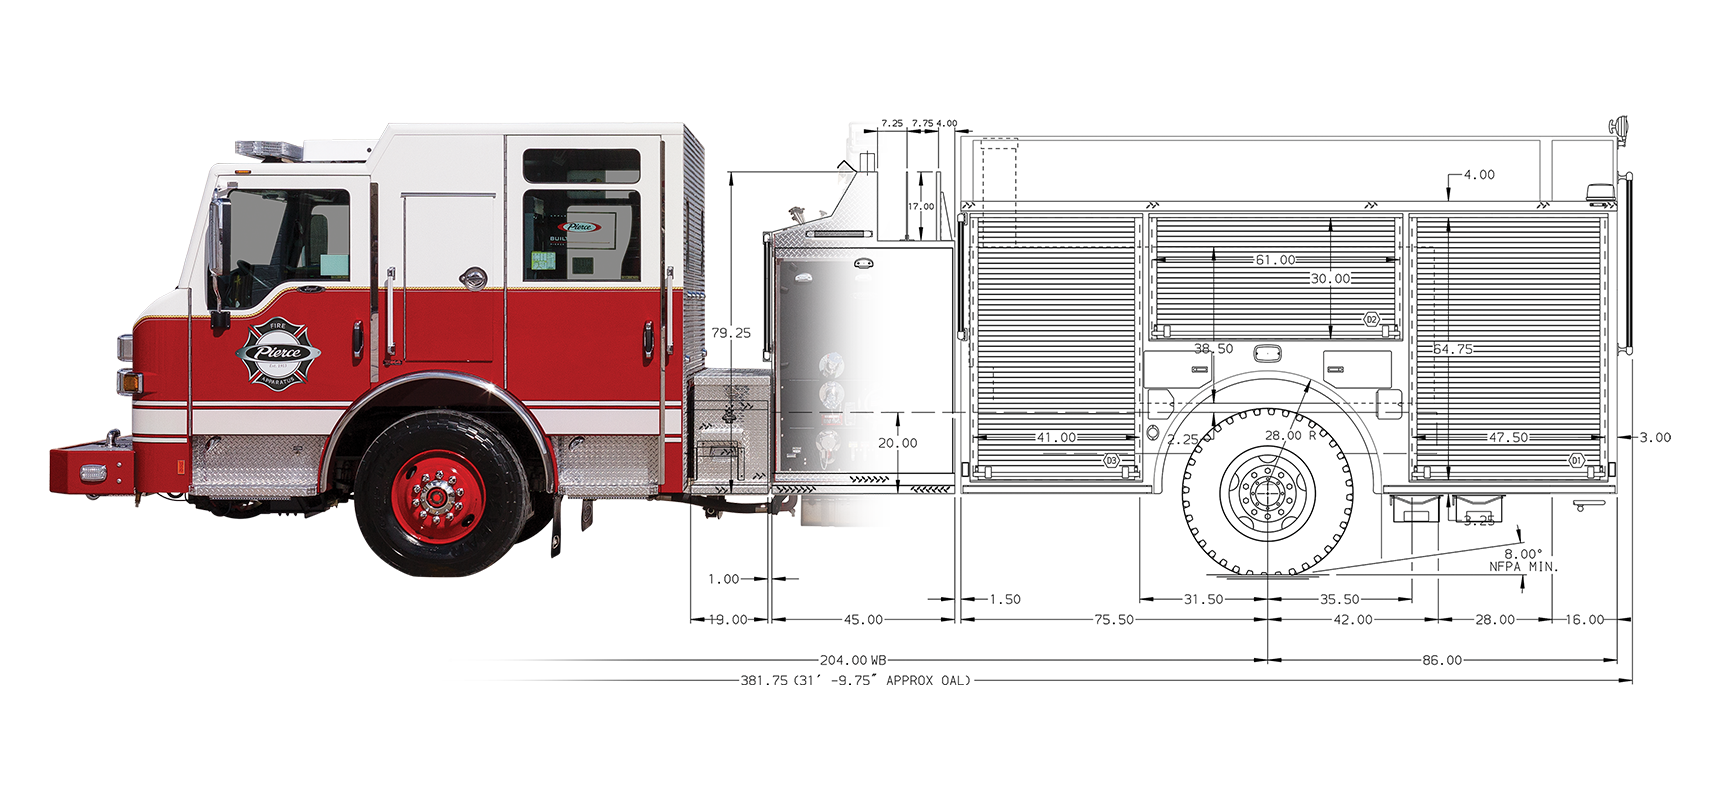 Build My Pierce (BMP) is a rapid configurator to simplify the fire apparatus design and ordering process.